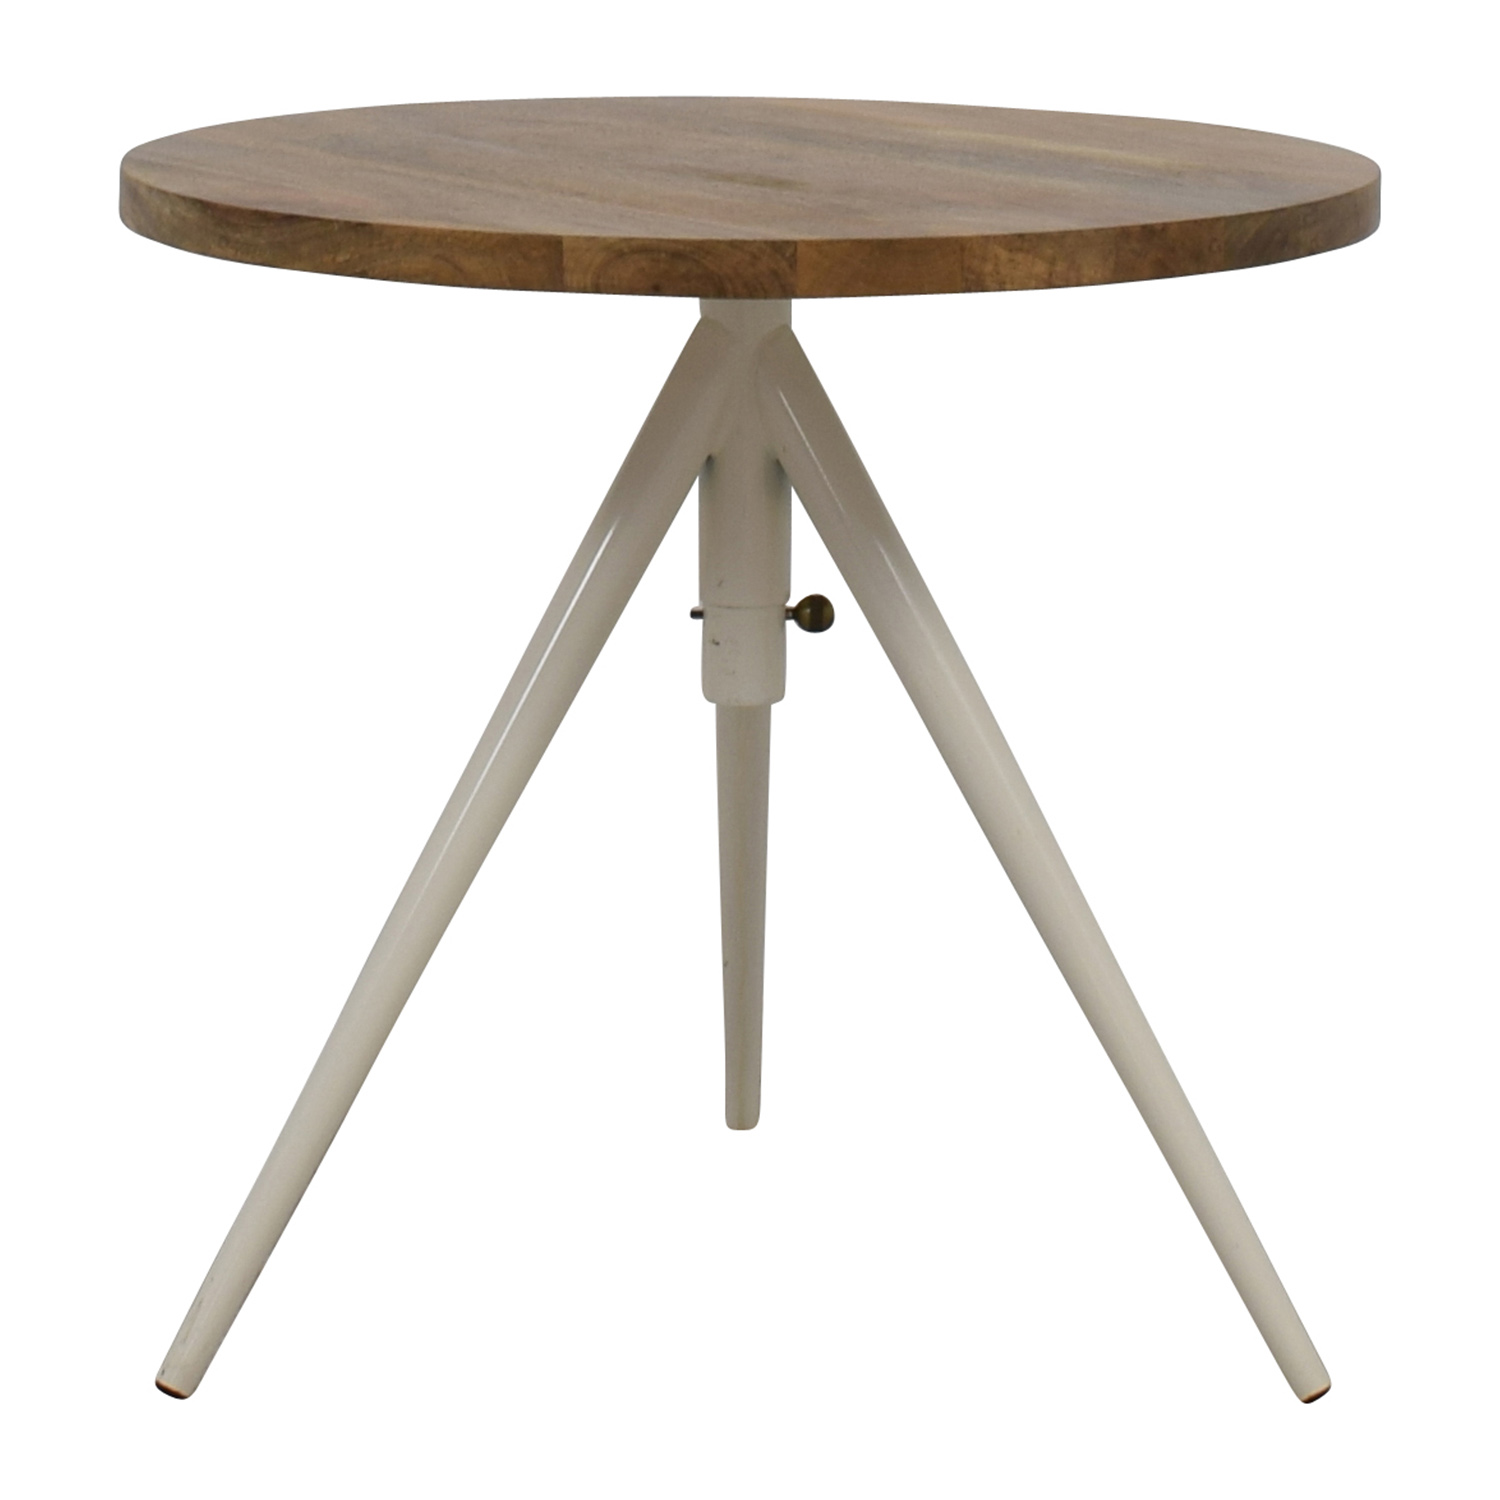 West Elm West Elm Round Adjustable Bistro Table coupon